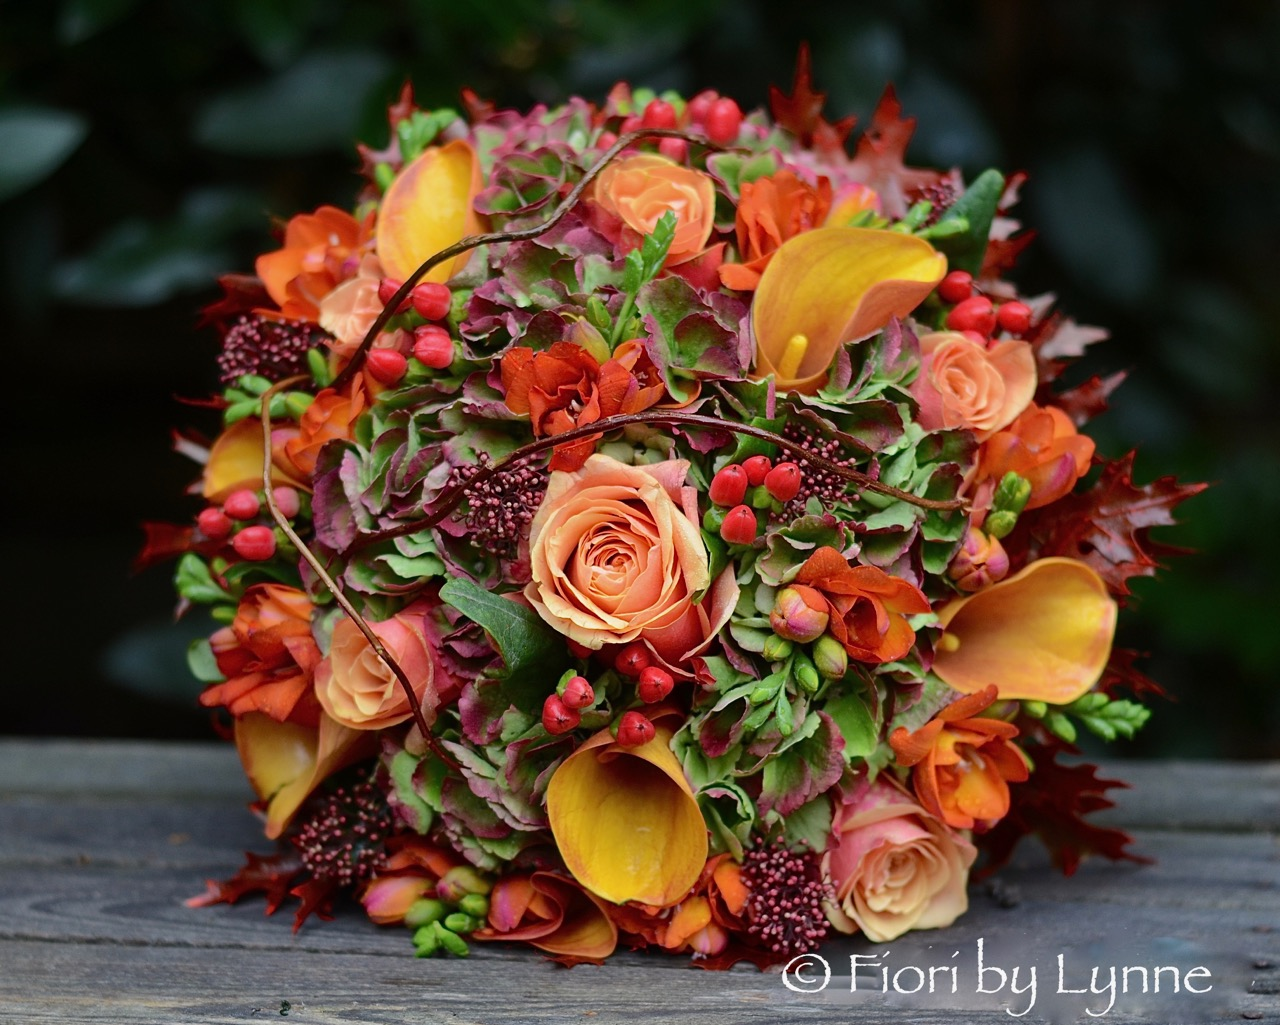 autumnal-bouquet,orange-rose,callaLily,berry,freesia,oak-leaves,twig.jpg